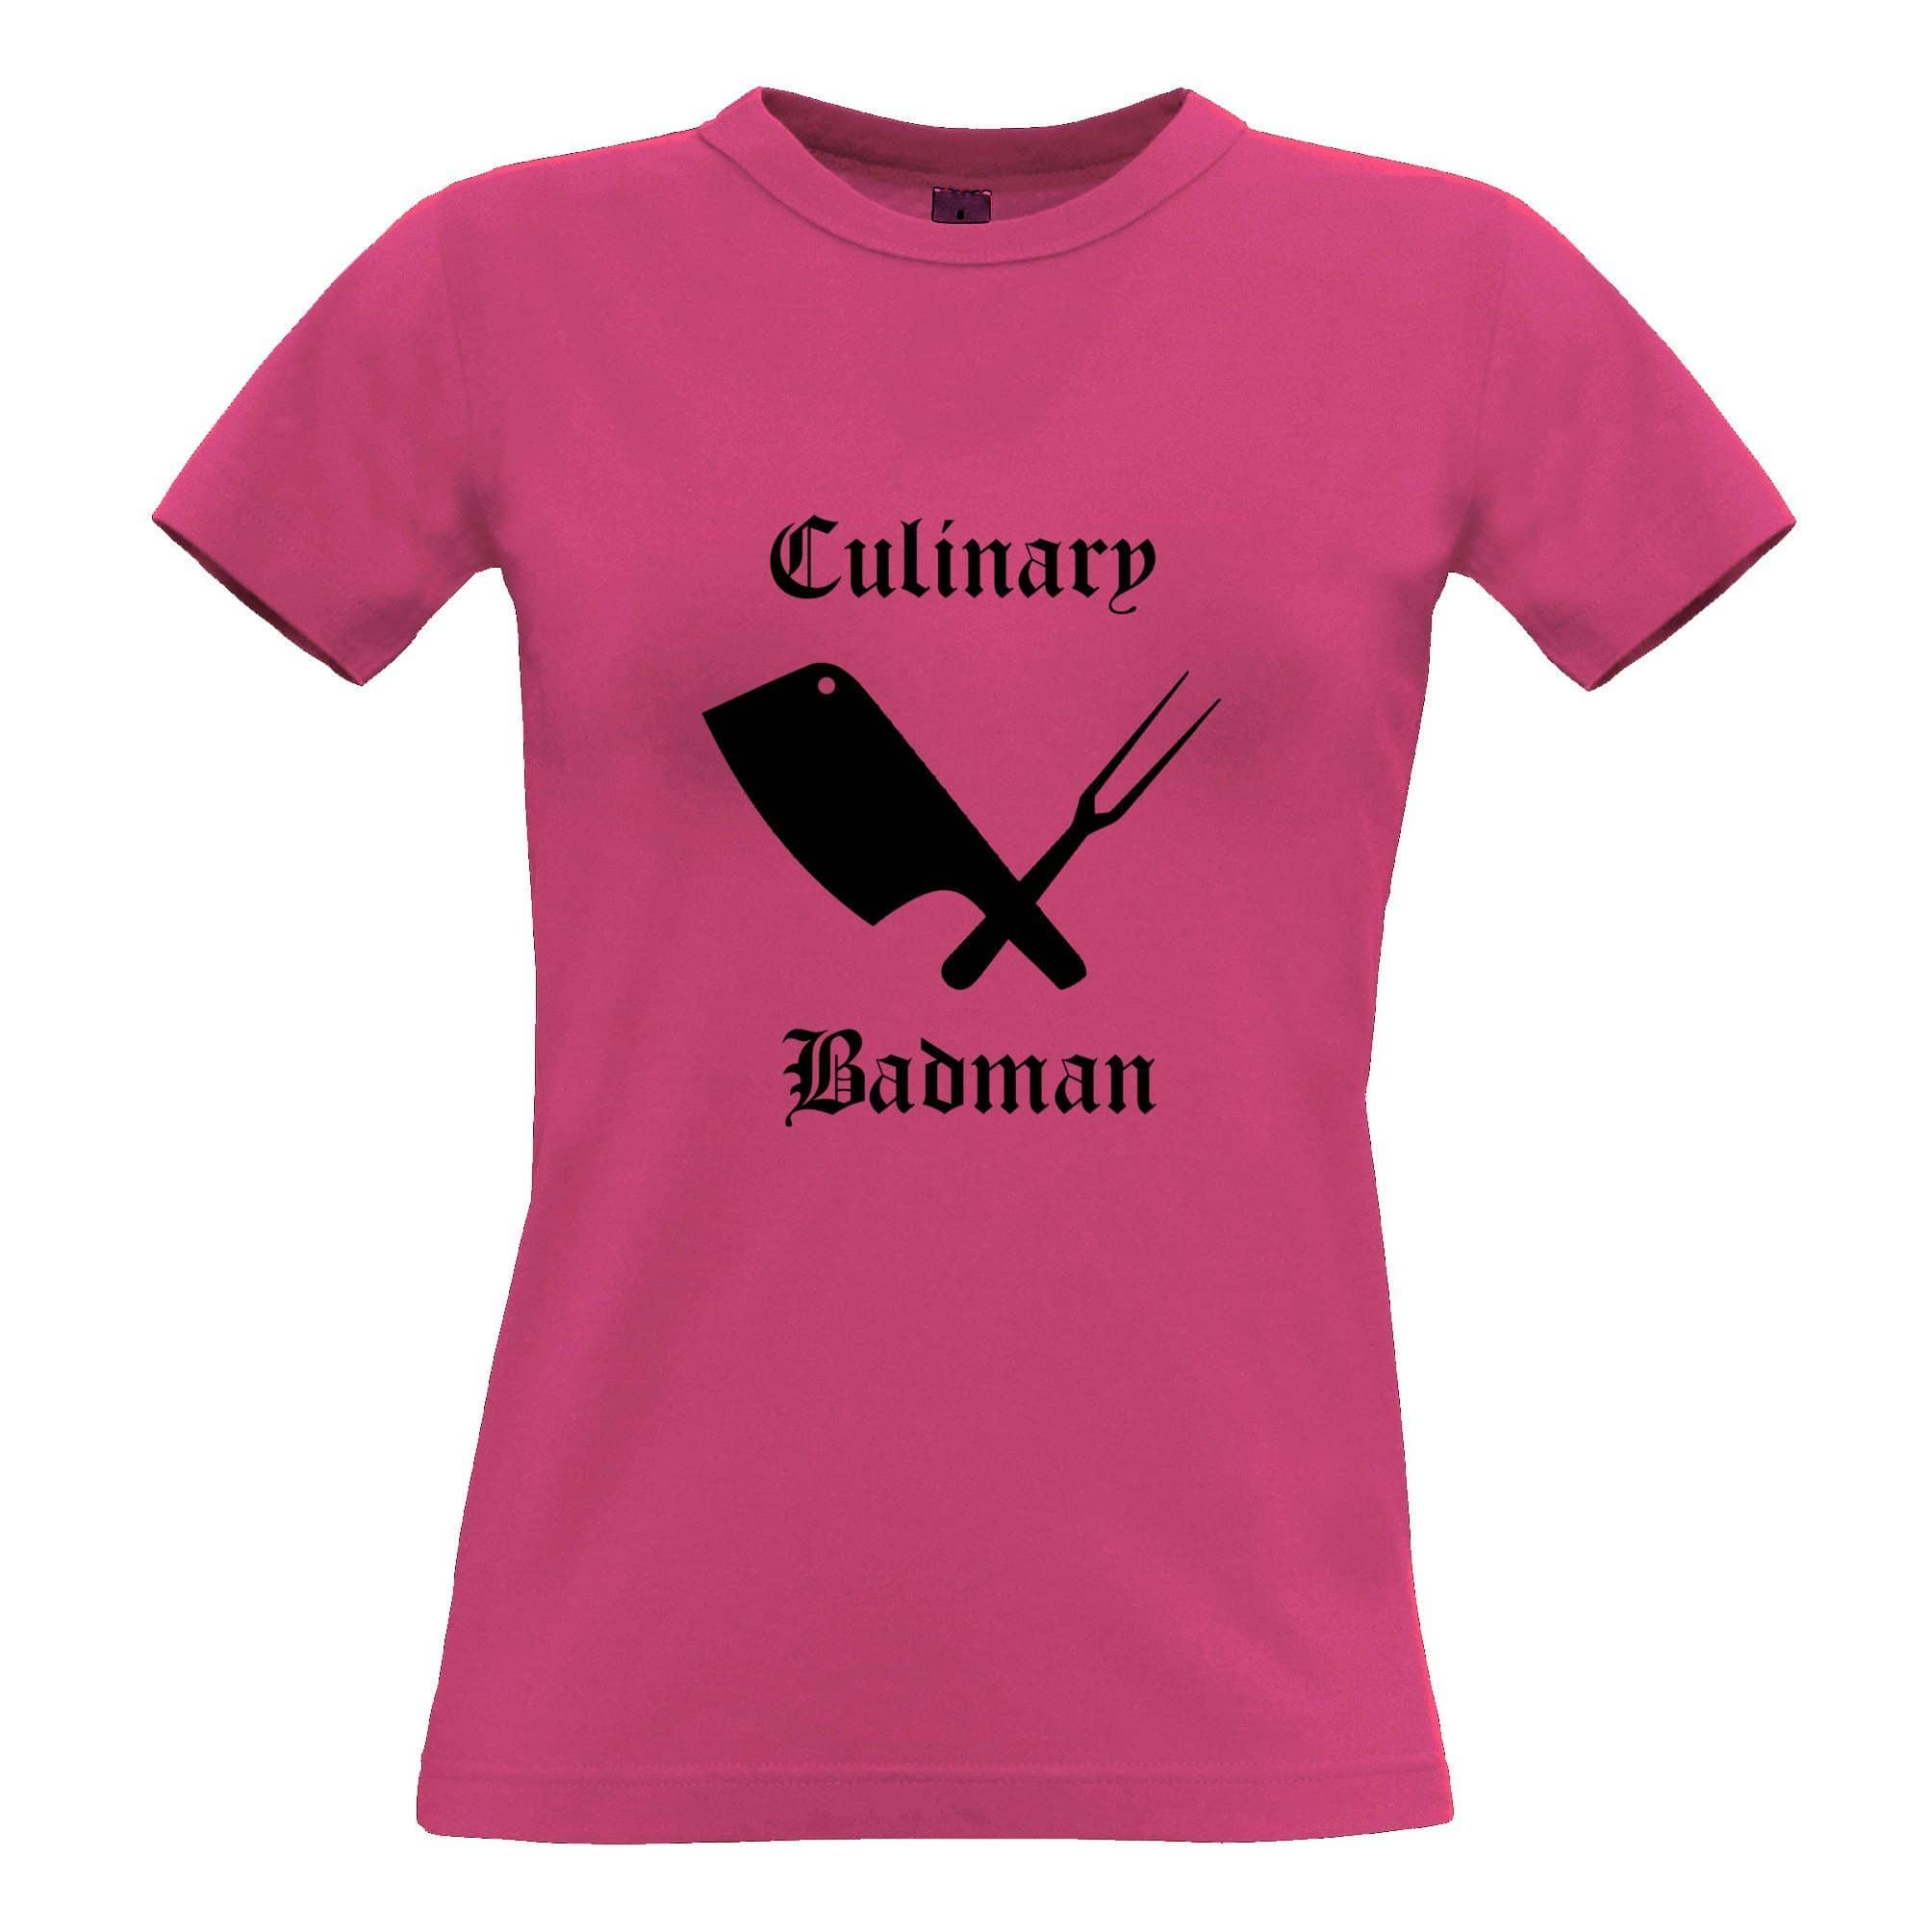 Cooking Womens T Shirt Culinary Badman Cuisine Logo